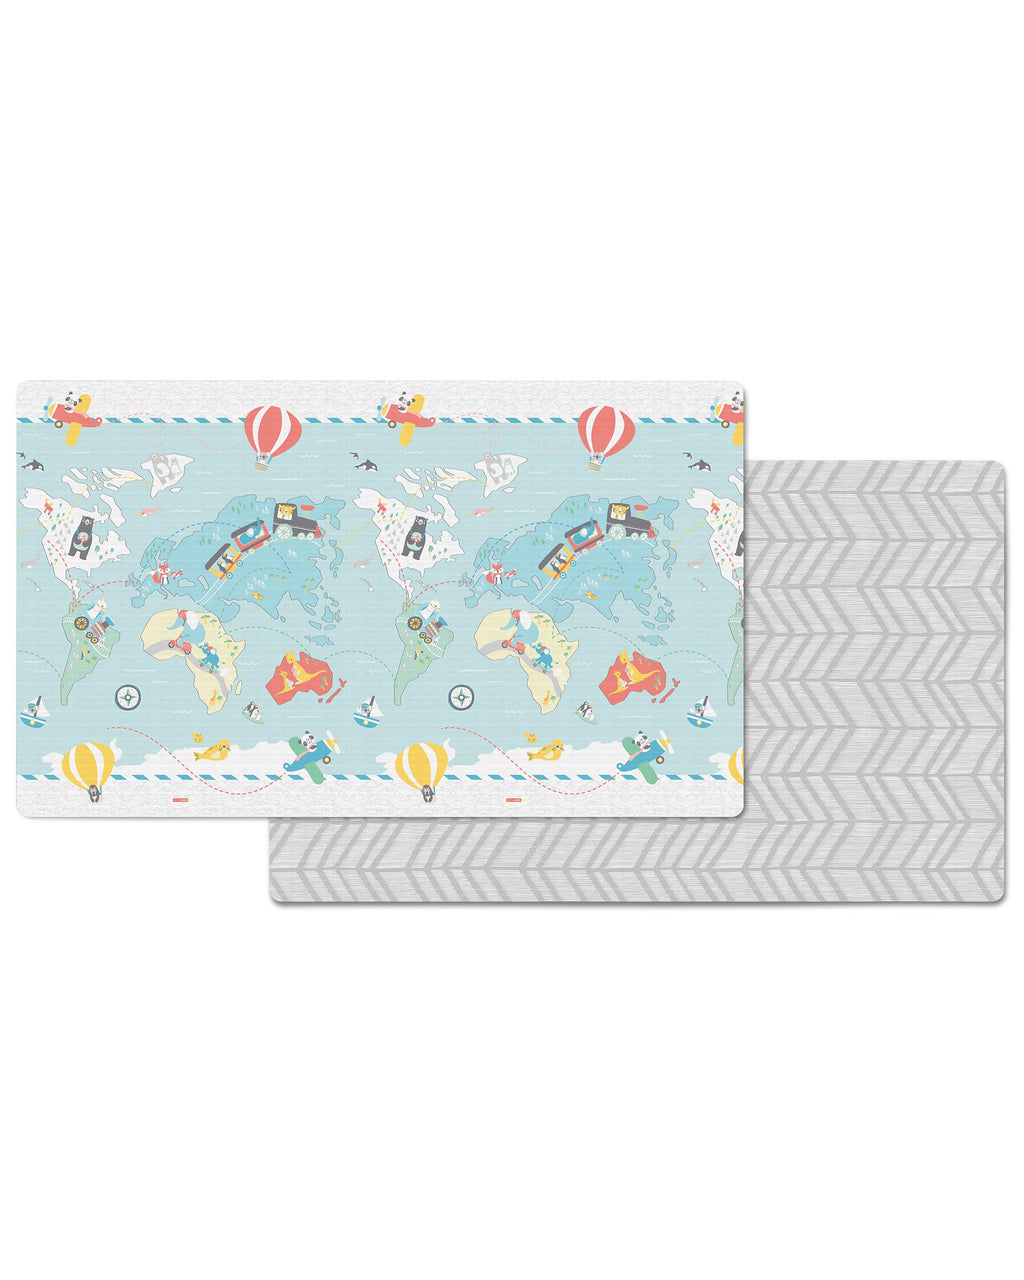 Copy of Skip Hop Doubleplay Reversible Playmat - Little Travelers